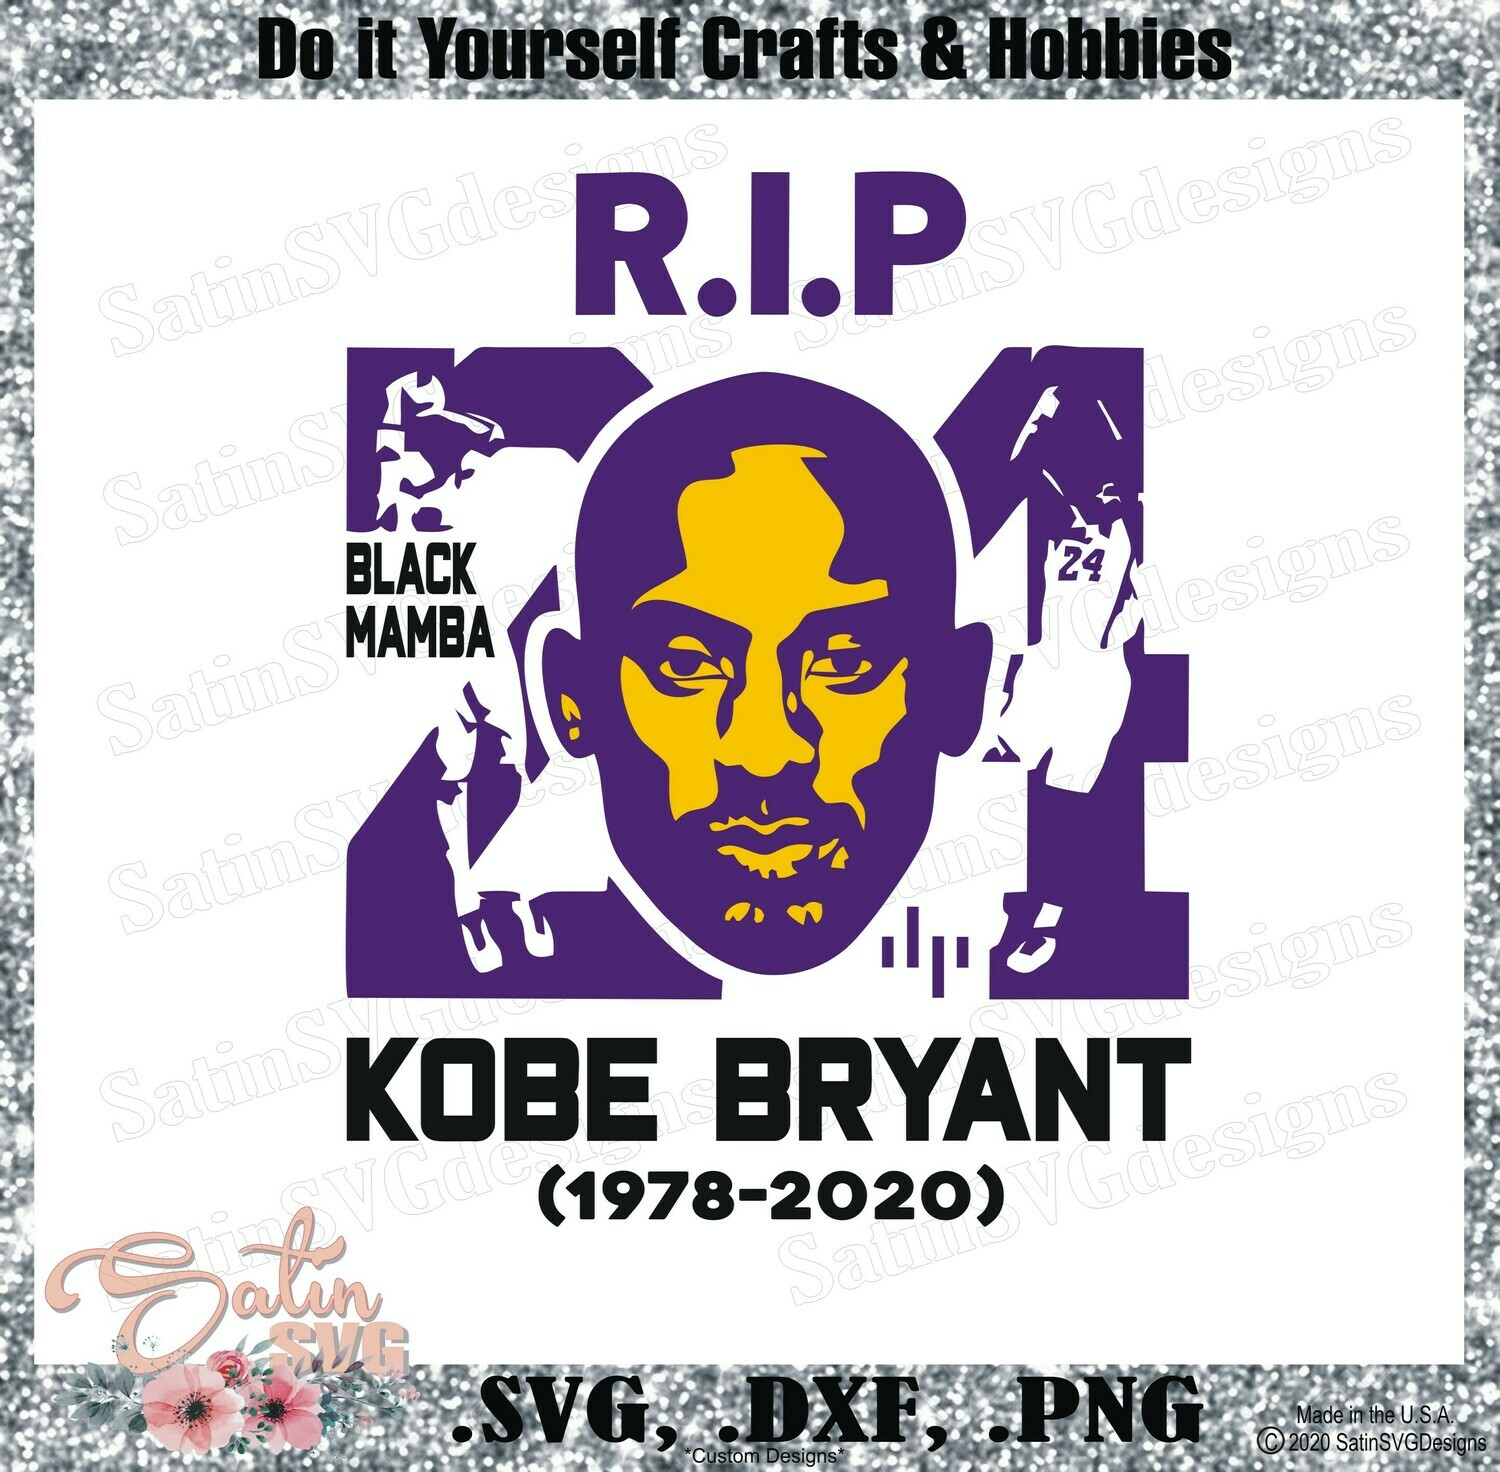 Kobe Bryant, #24 R.I.P NEW Custom Designs. SVG Files, Cricut, Silhouette Studio, Digital Cut Files, Infusible Ink